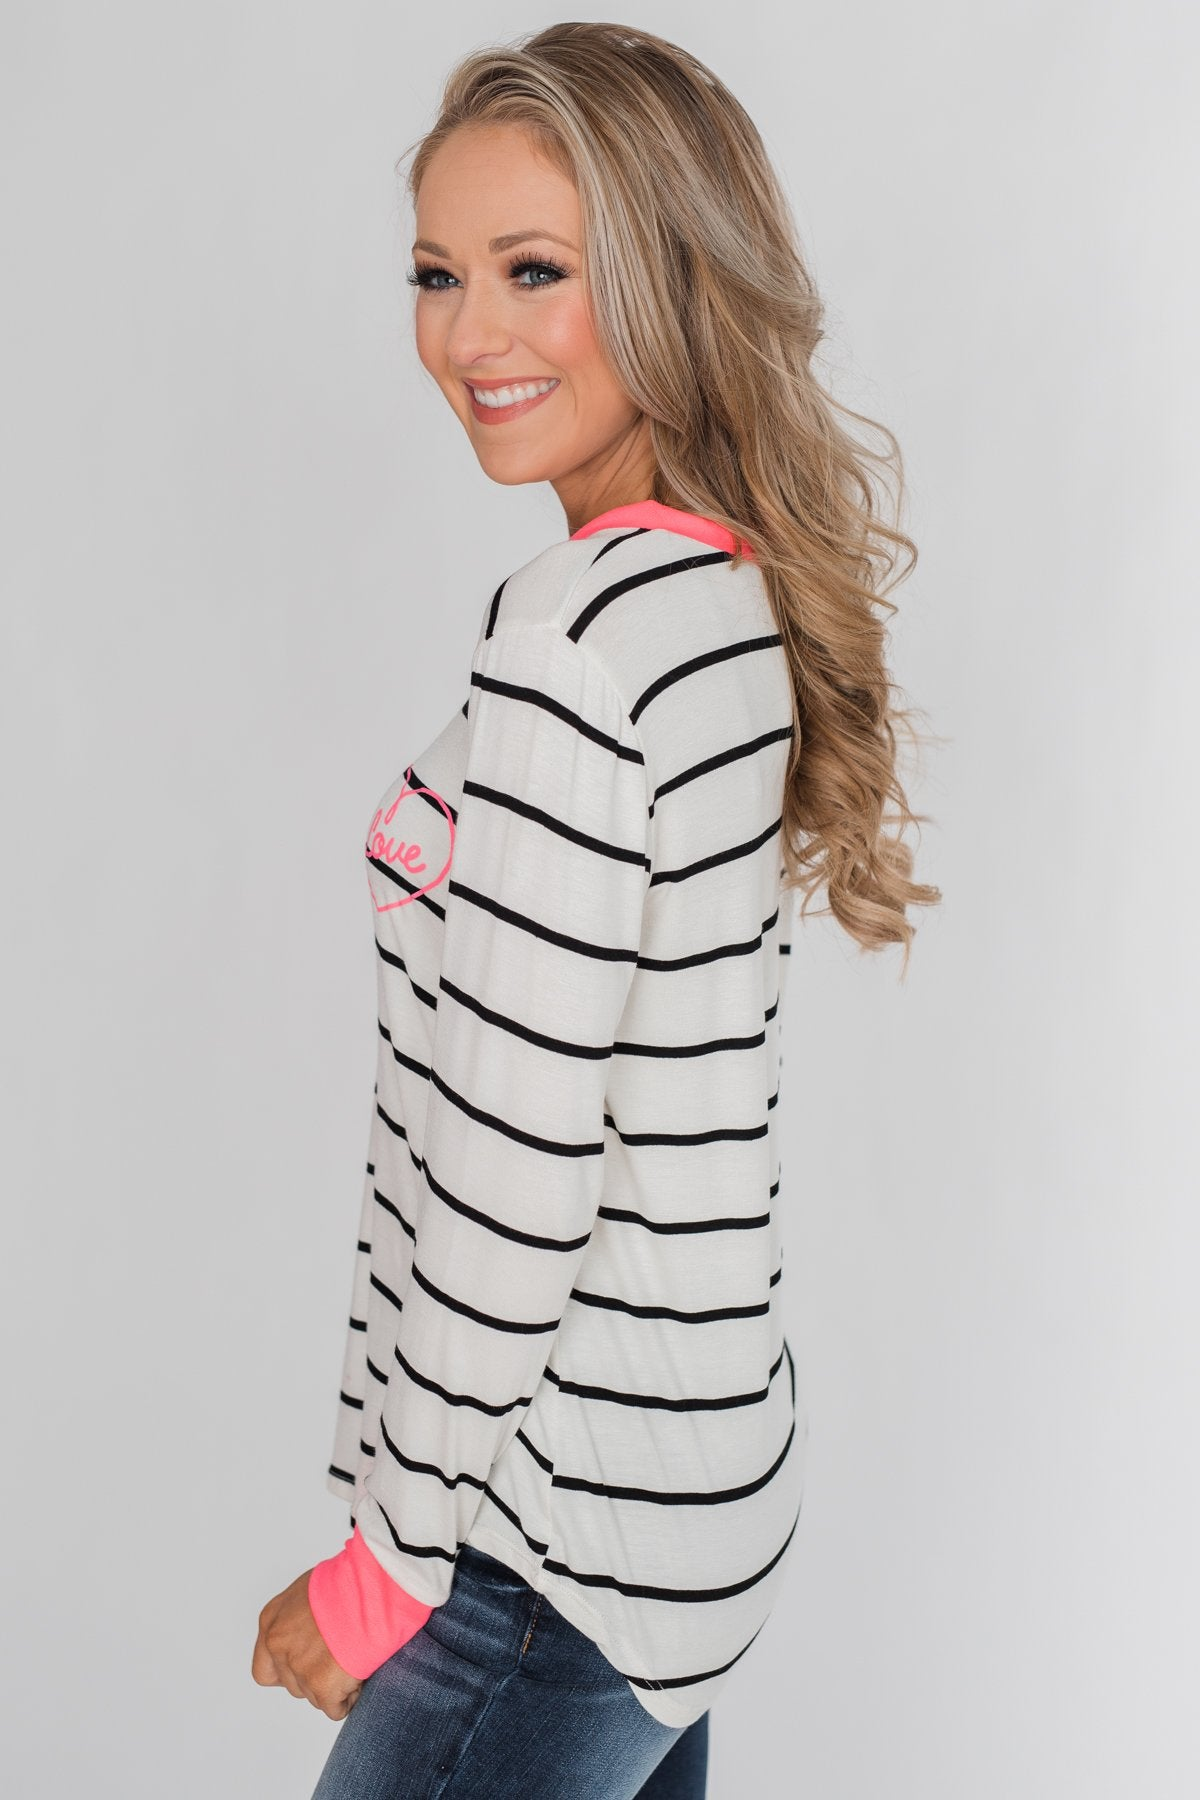 Love in My Heart Striped Top - Ivory & Bright Pink